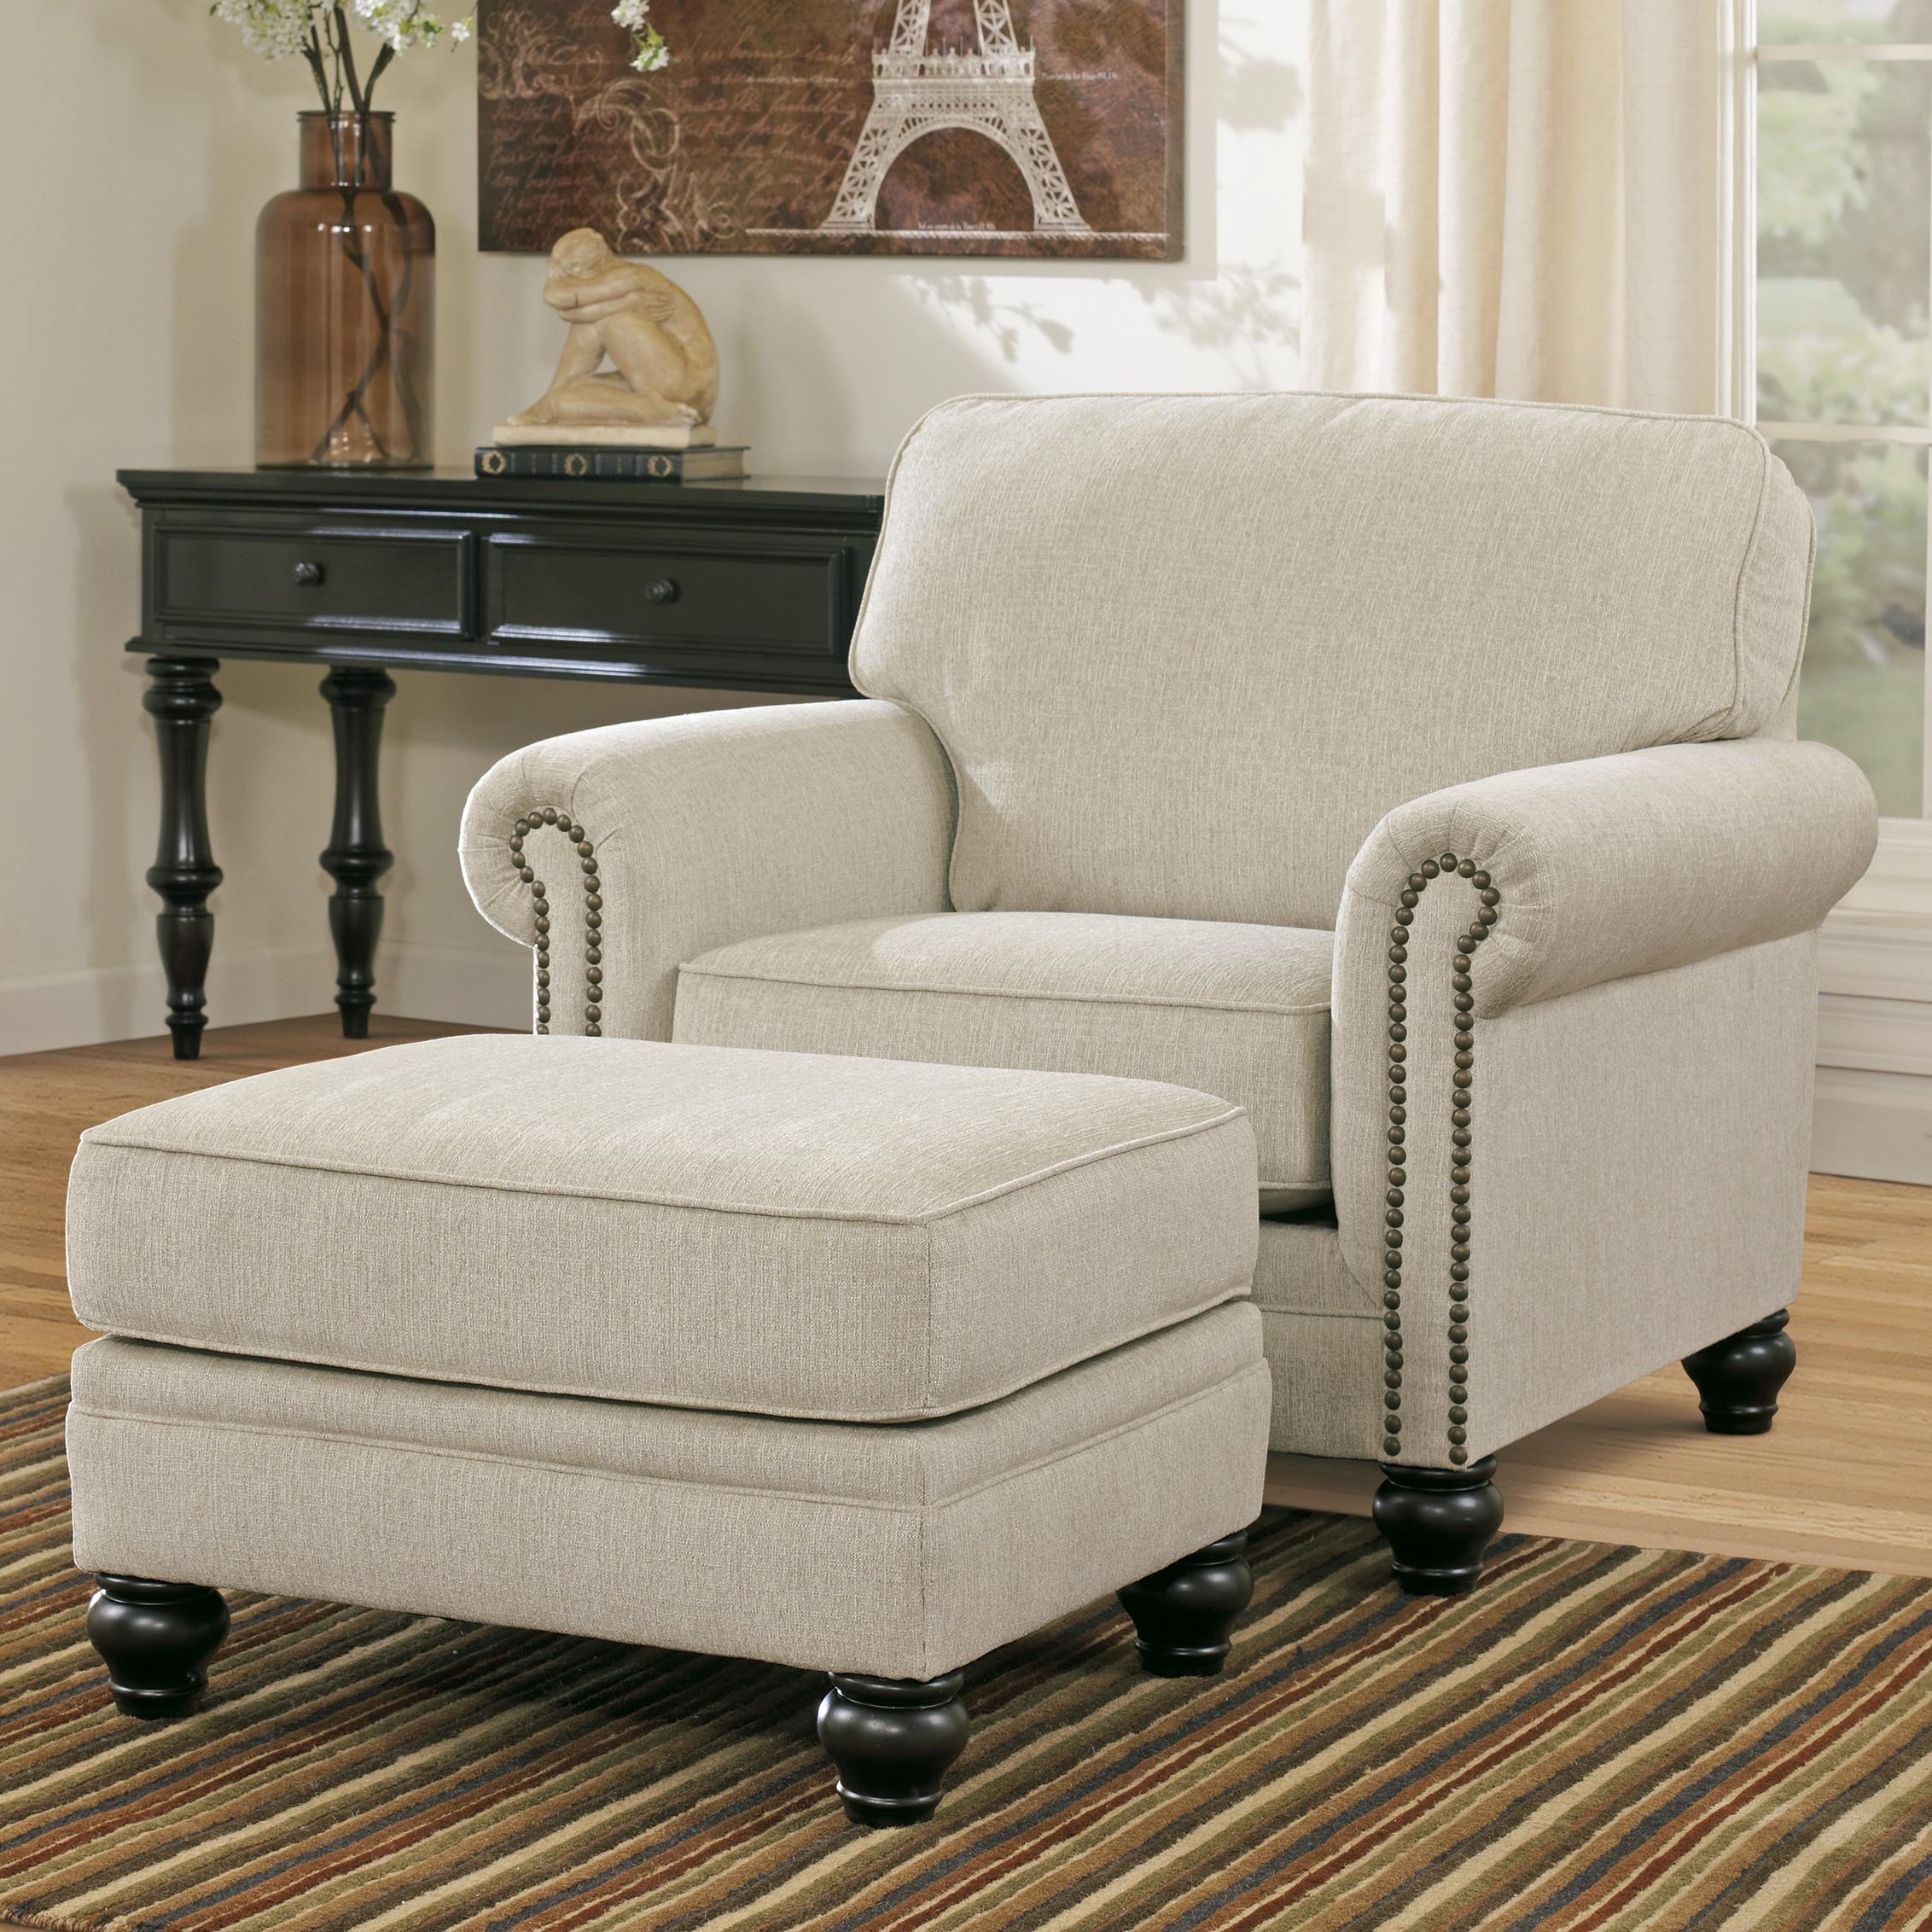 Milari - Linen Chair & Ottoman by Signature Design by Ashley at Catalog Outlet